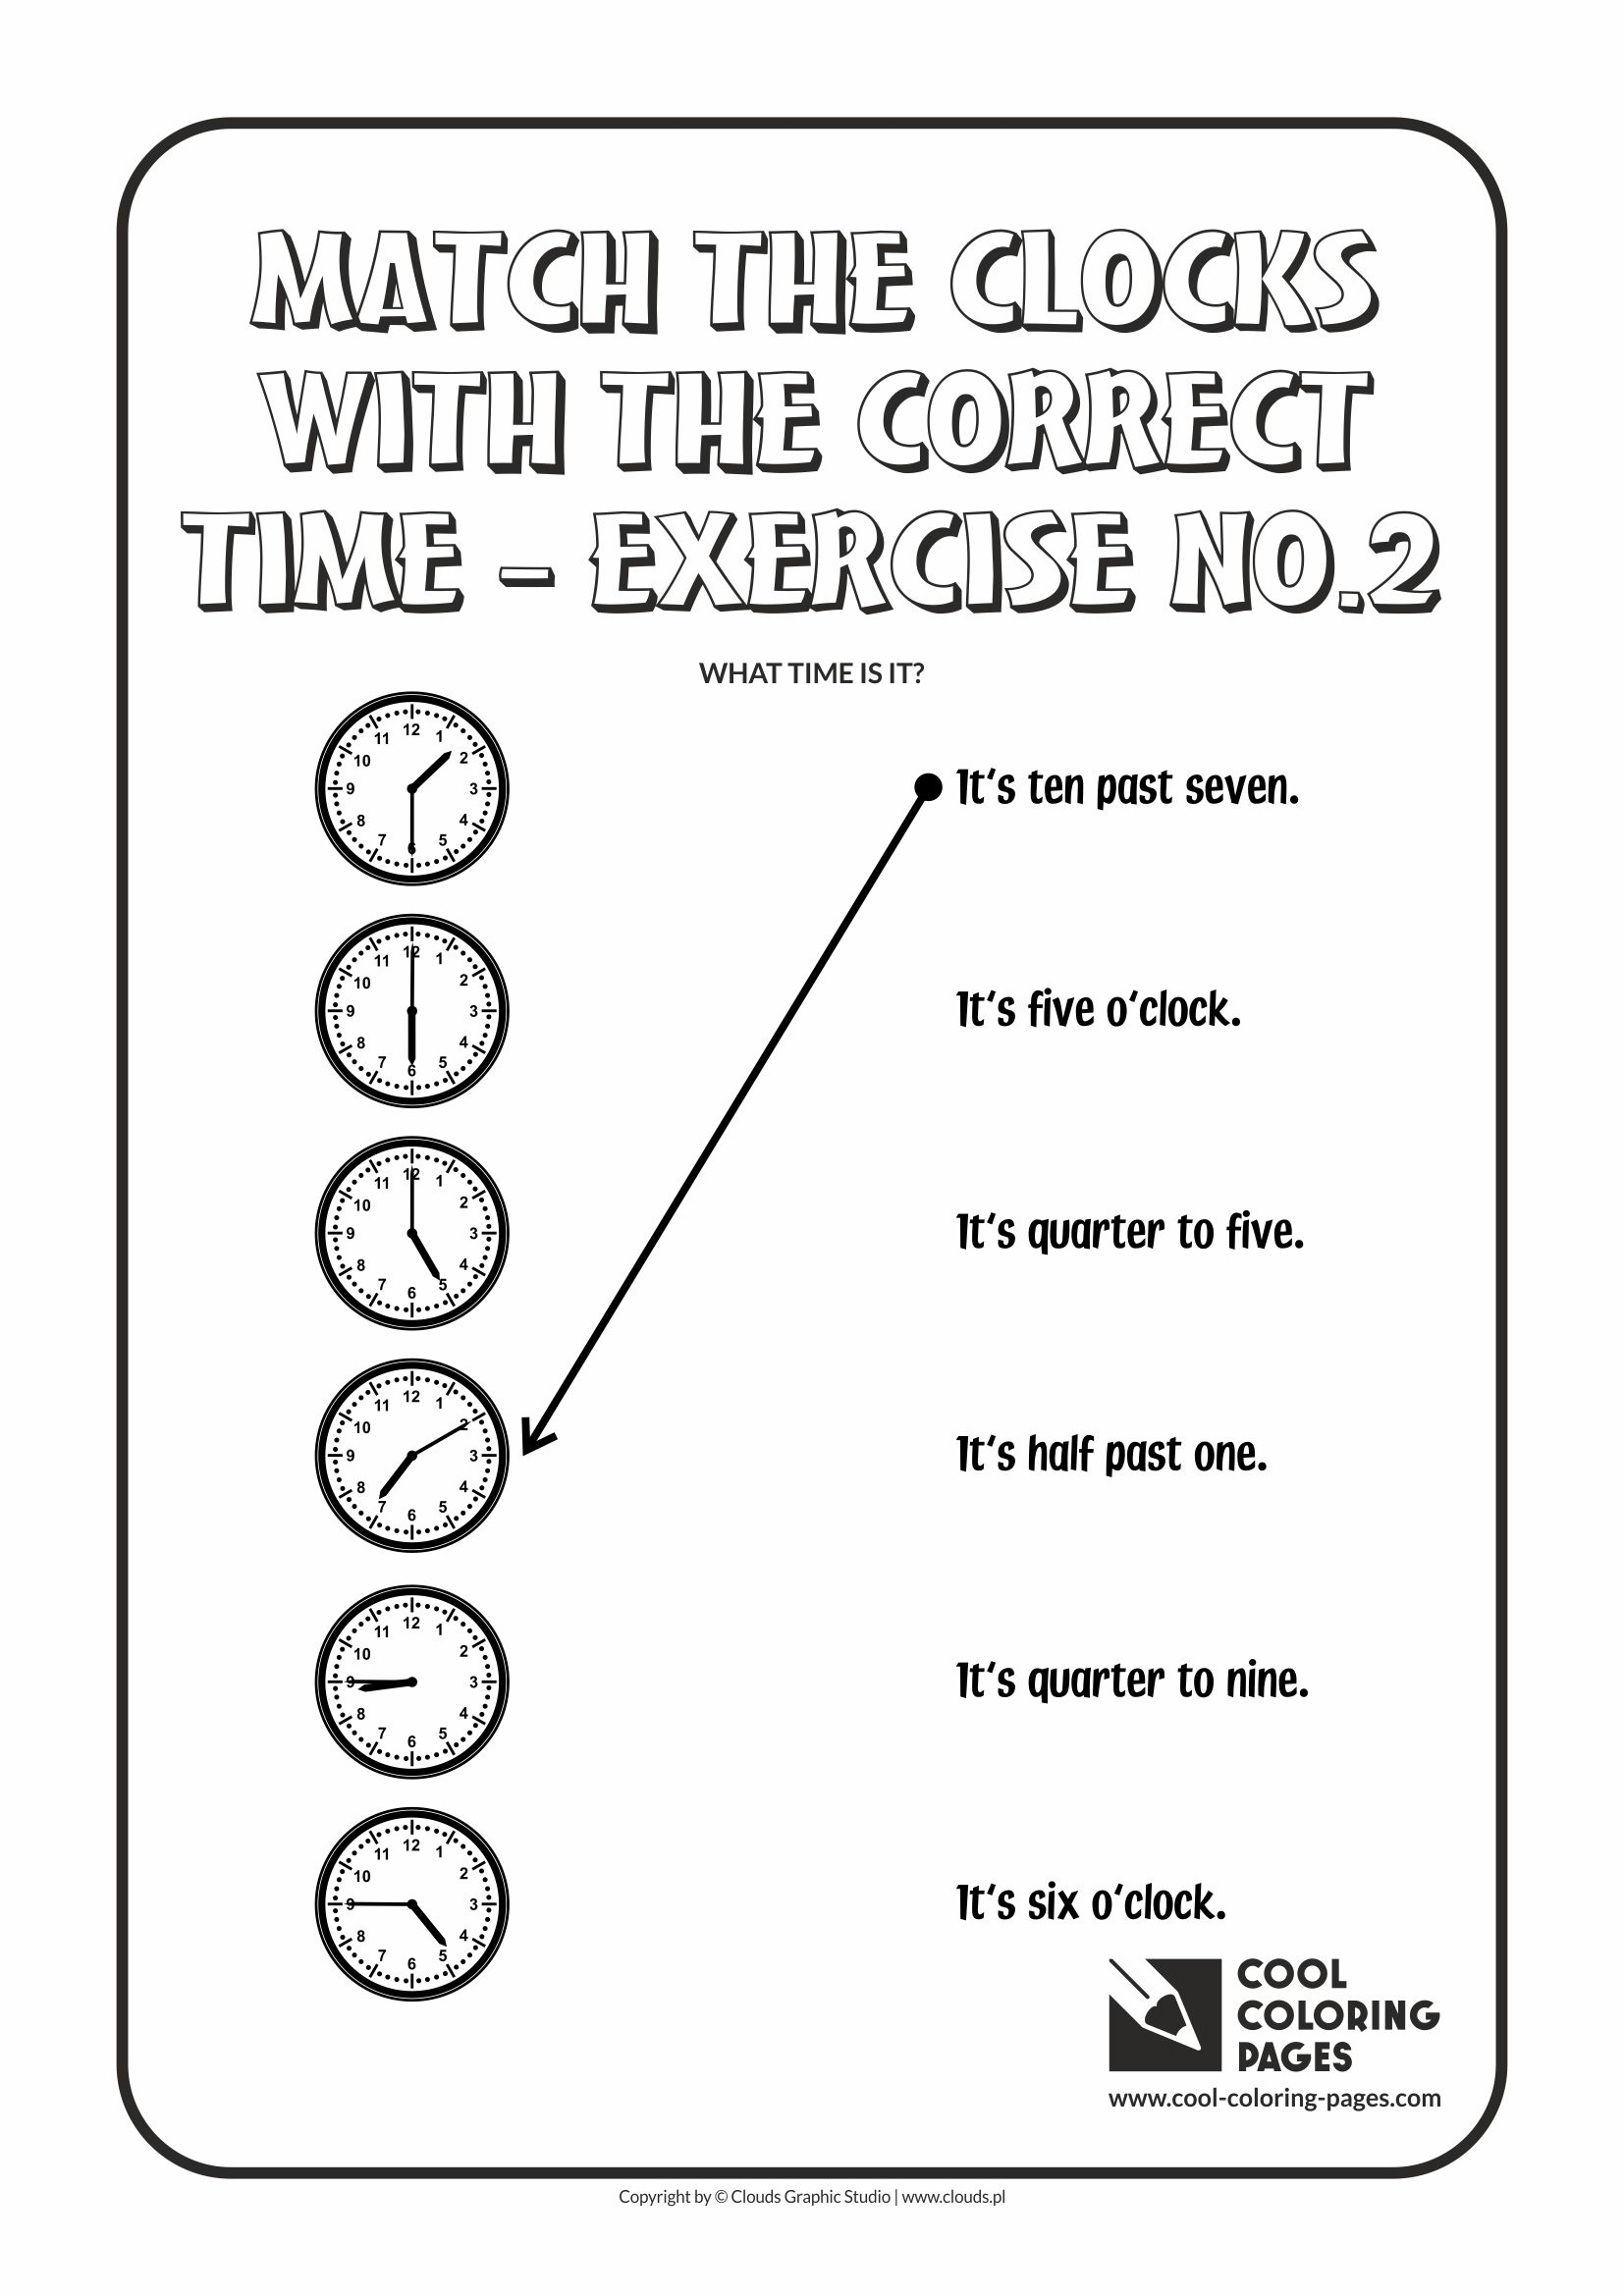 Cool Coloring Pages - Time / Match the clocks with the correct time no.2